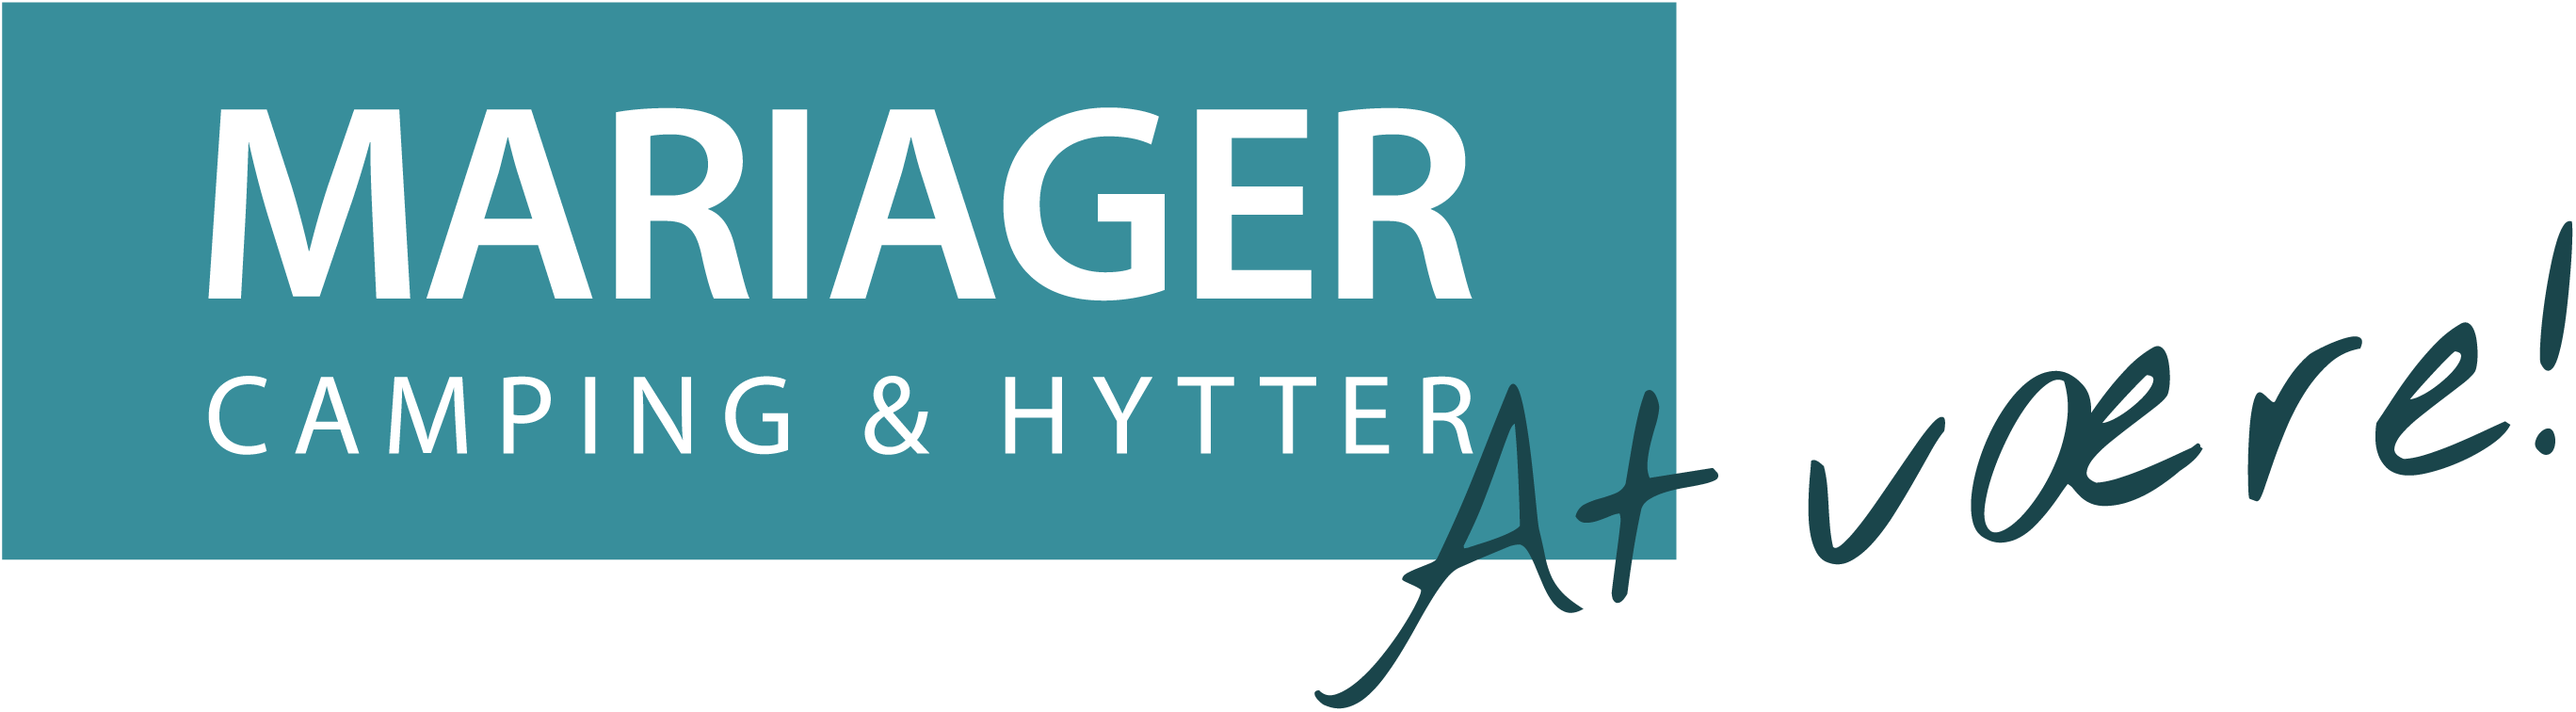 Mariager Camping & Hytter